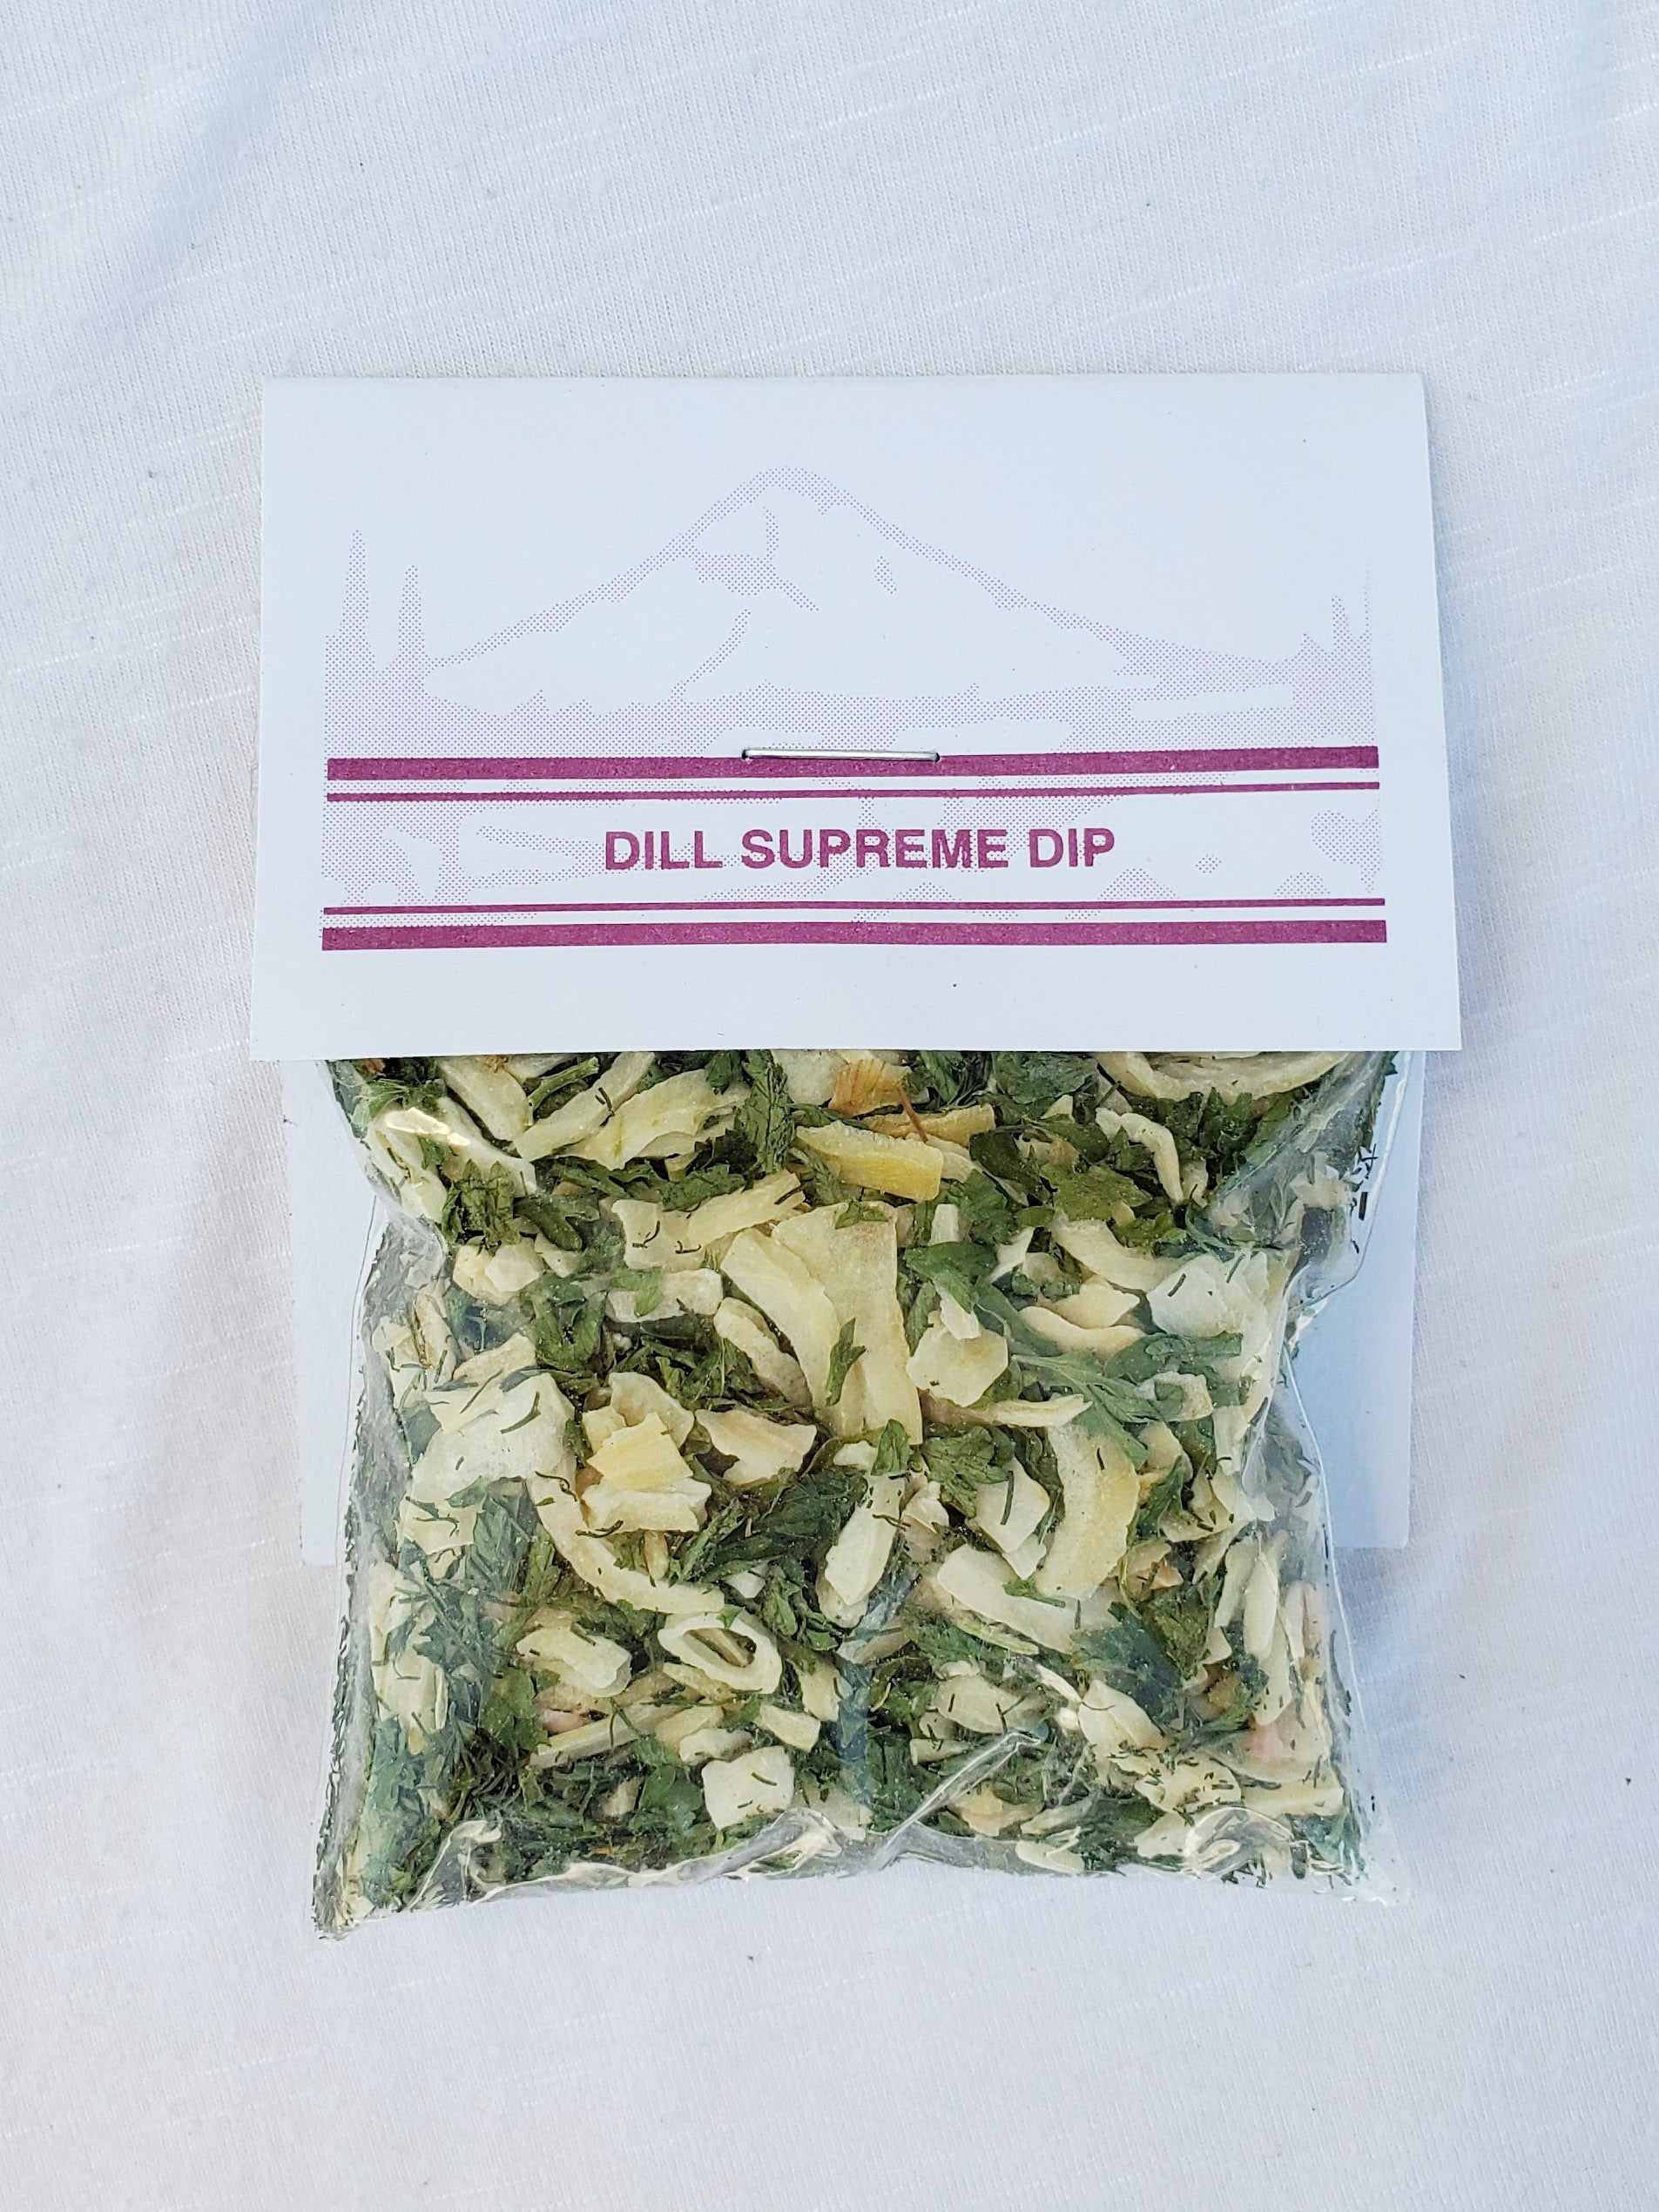 Northwest Spices Dill Supreme Seasoning Blend and Dip mix